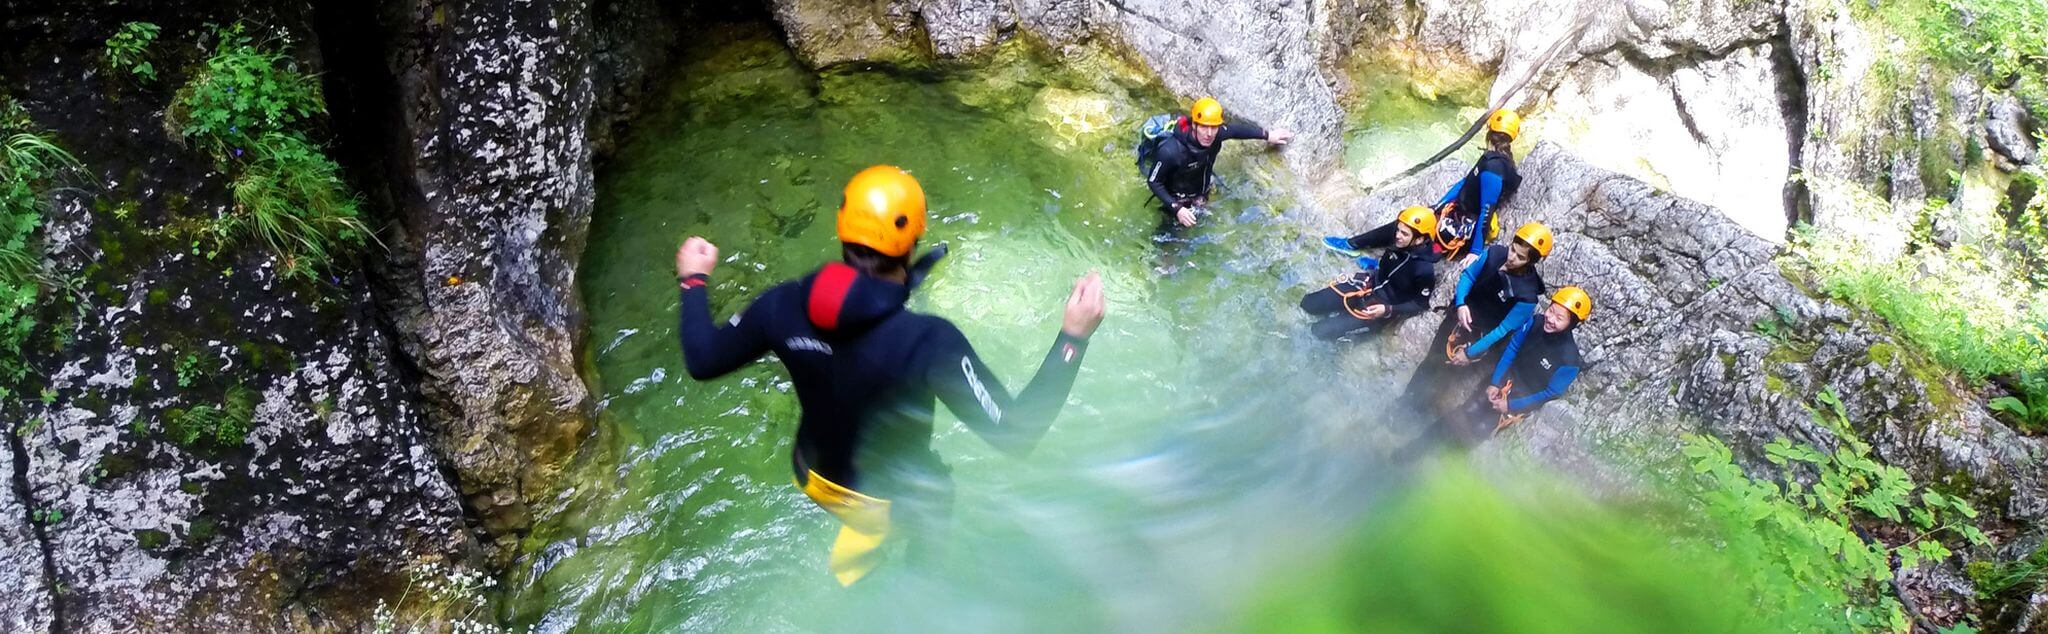 Canyoning in Castello D'empuries